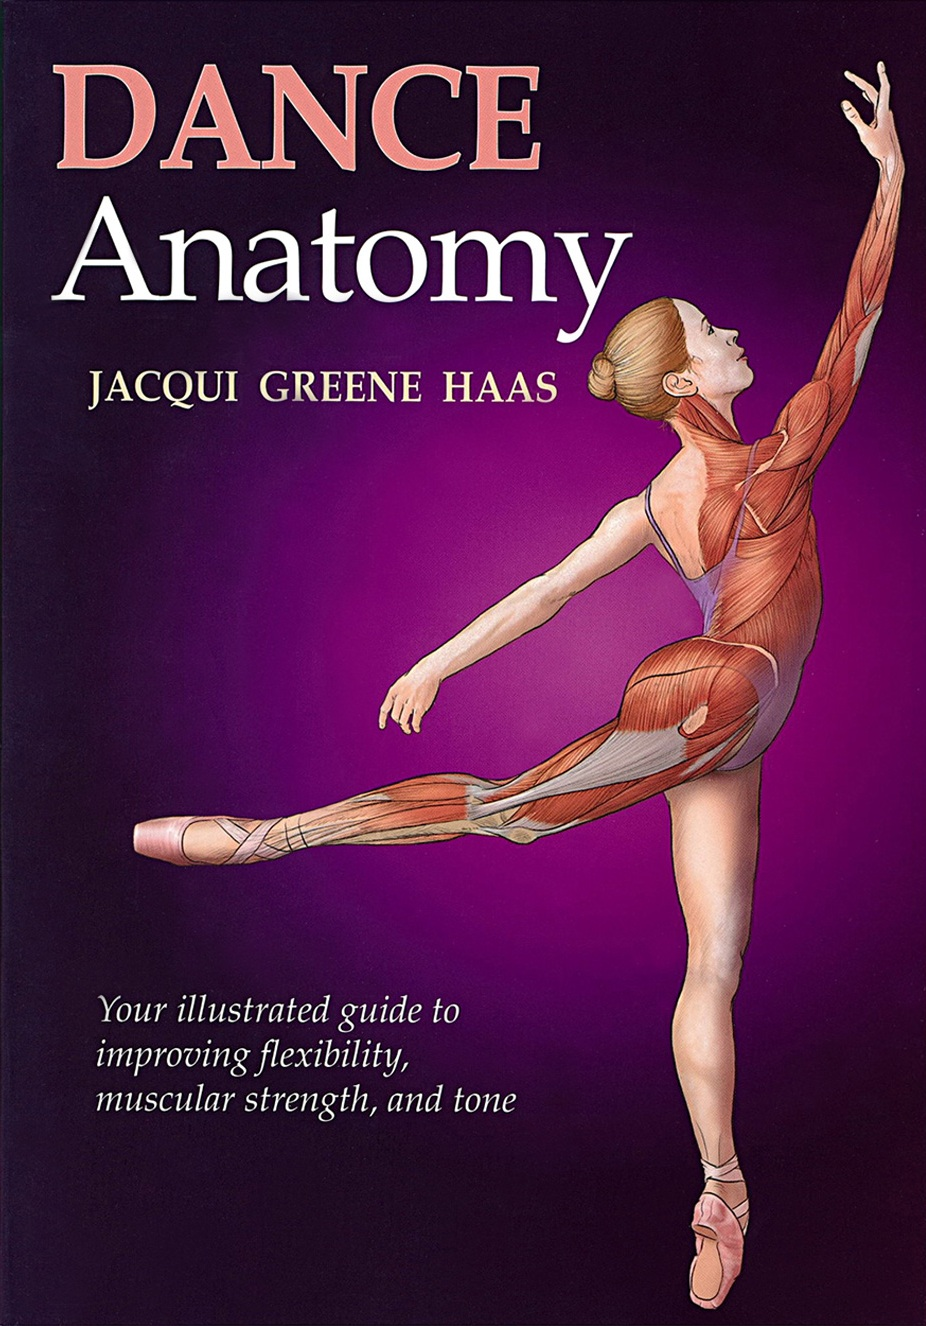 (2010) Featuring over 200 full-color illustrations, Dance Anatomy visually depicts the unique relationship between muscle development and aesthetic movement as never before. -